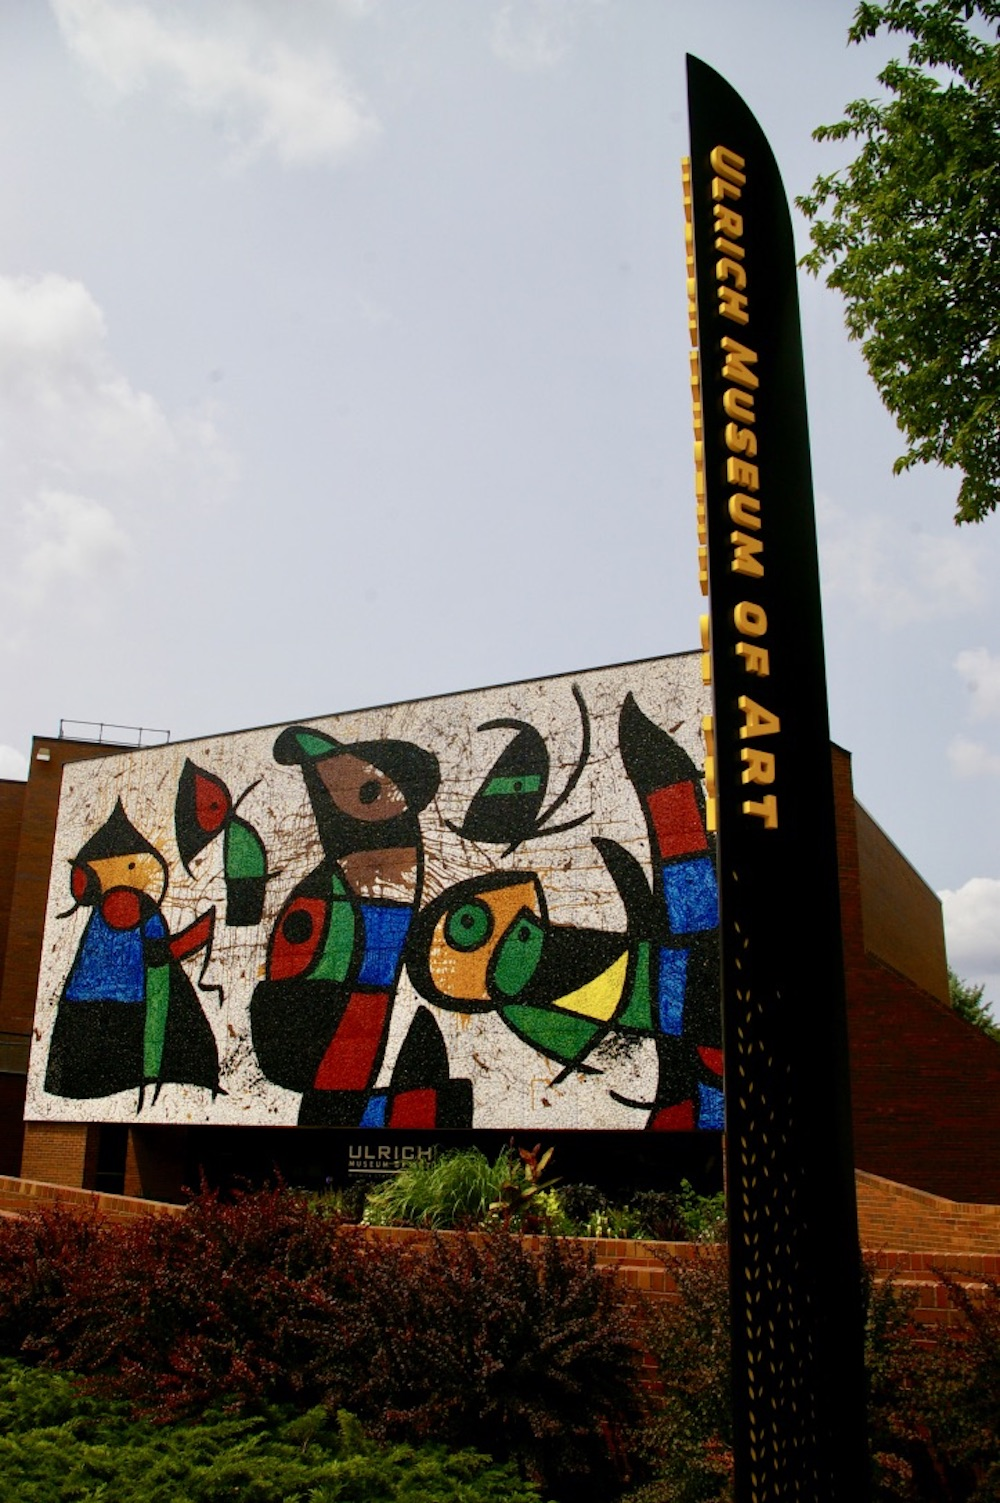 Exterior of the Ulrich Museum of Art with a large mosaic mural on the Wichita State campus in Wichita, Kansas